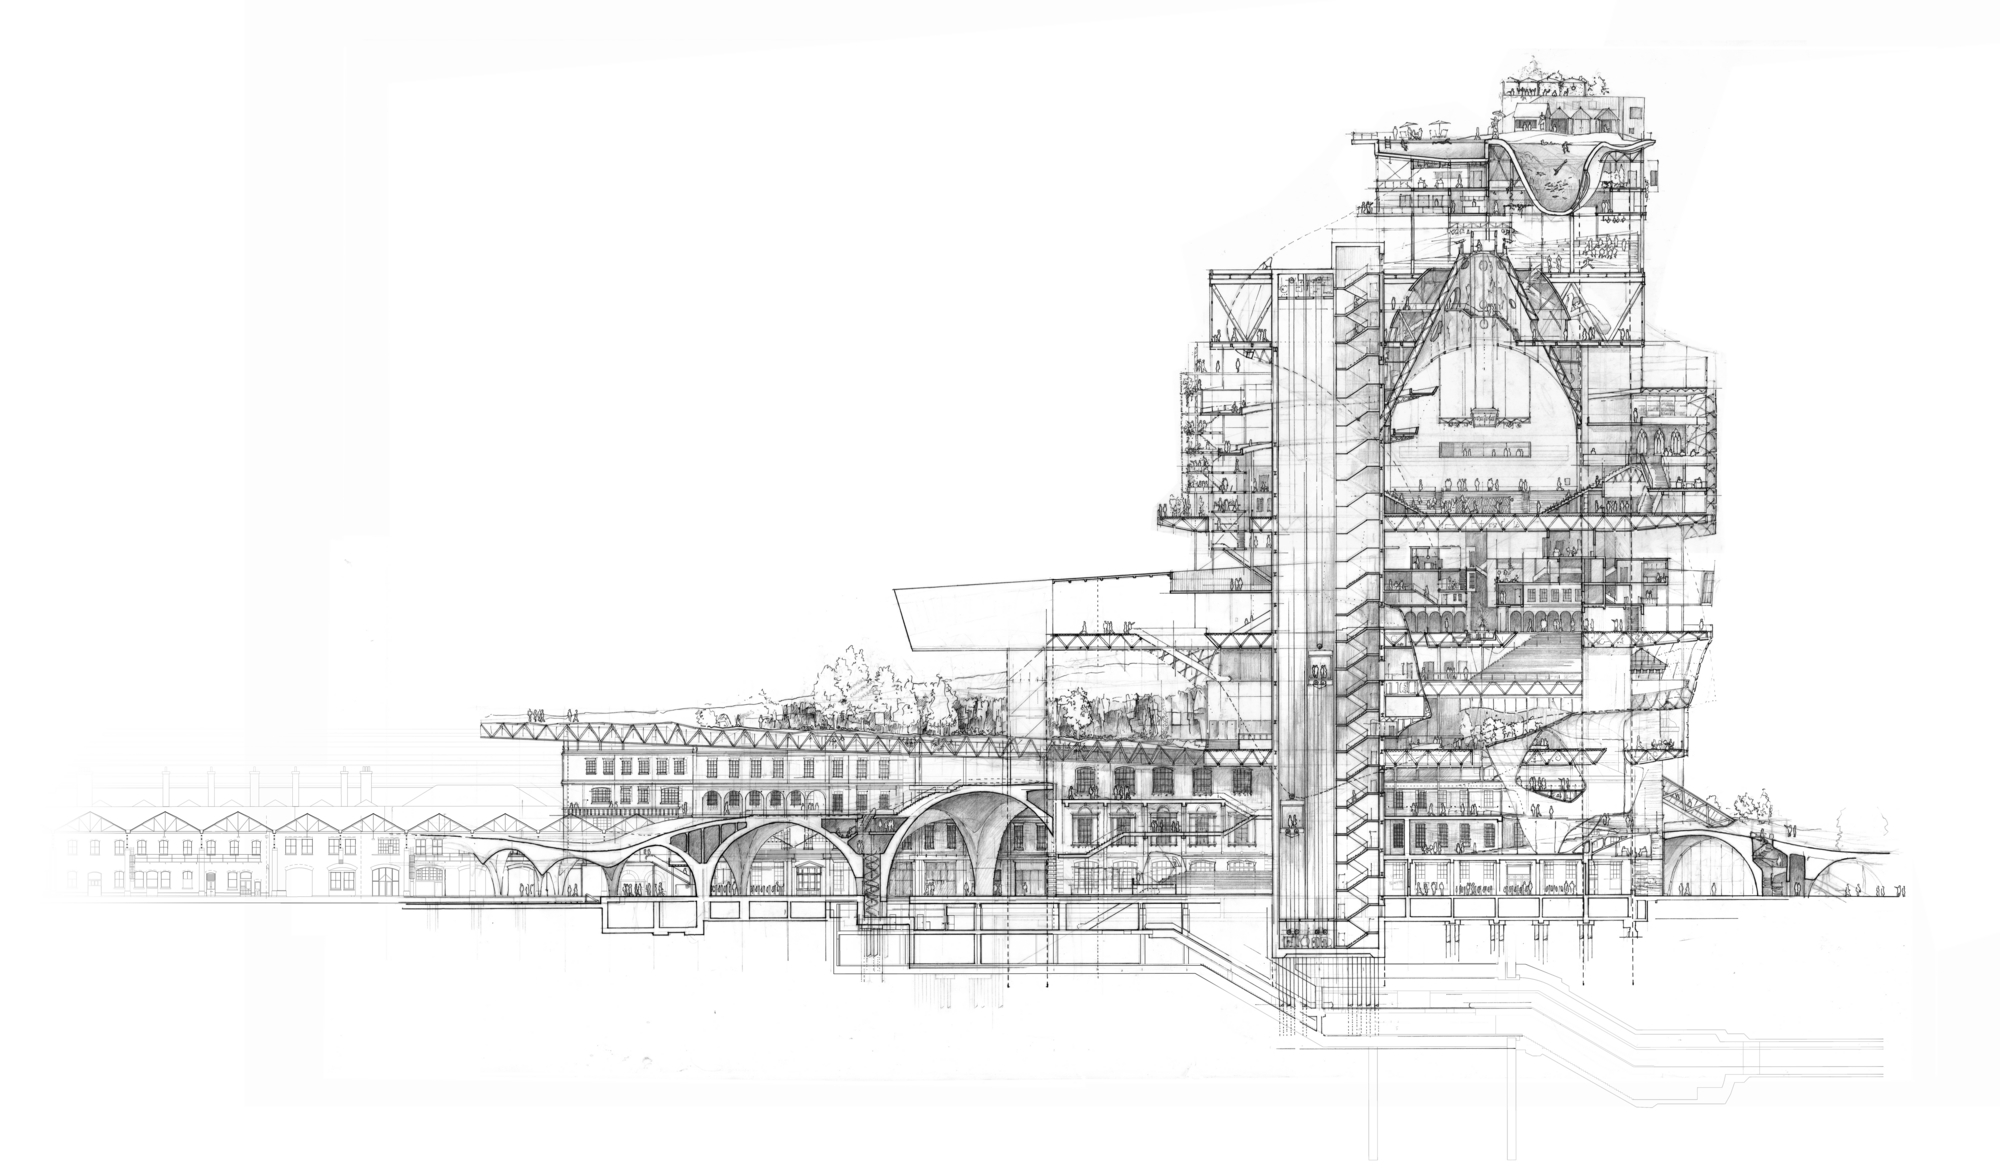 Drawn bulding  technical drawing Architecture Stuart Drawing drawn Franks